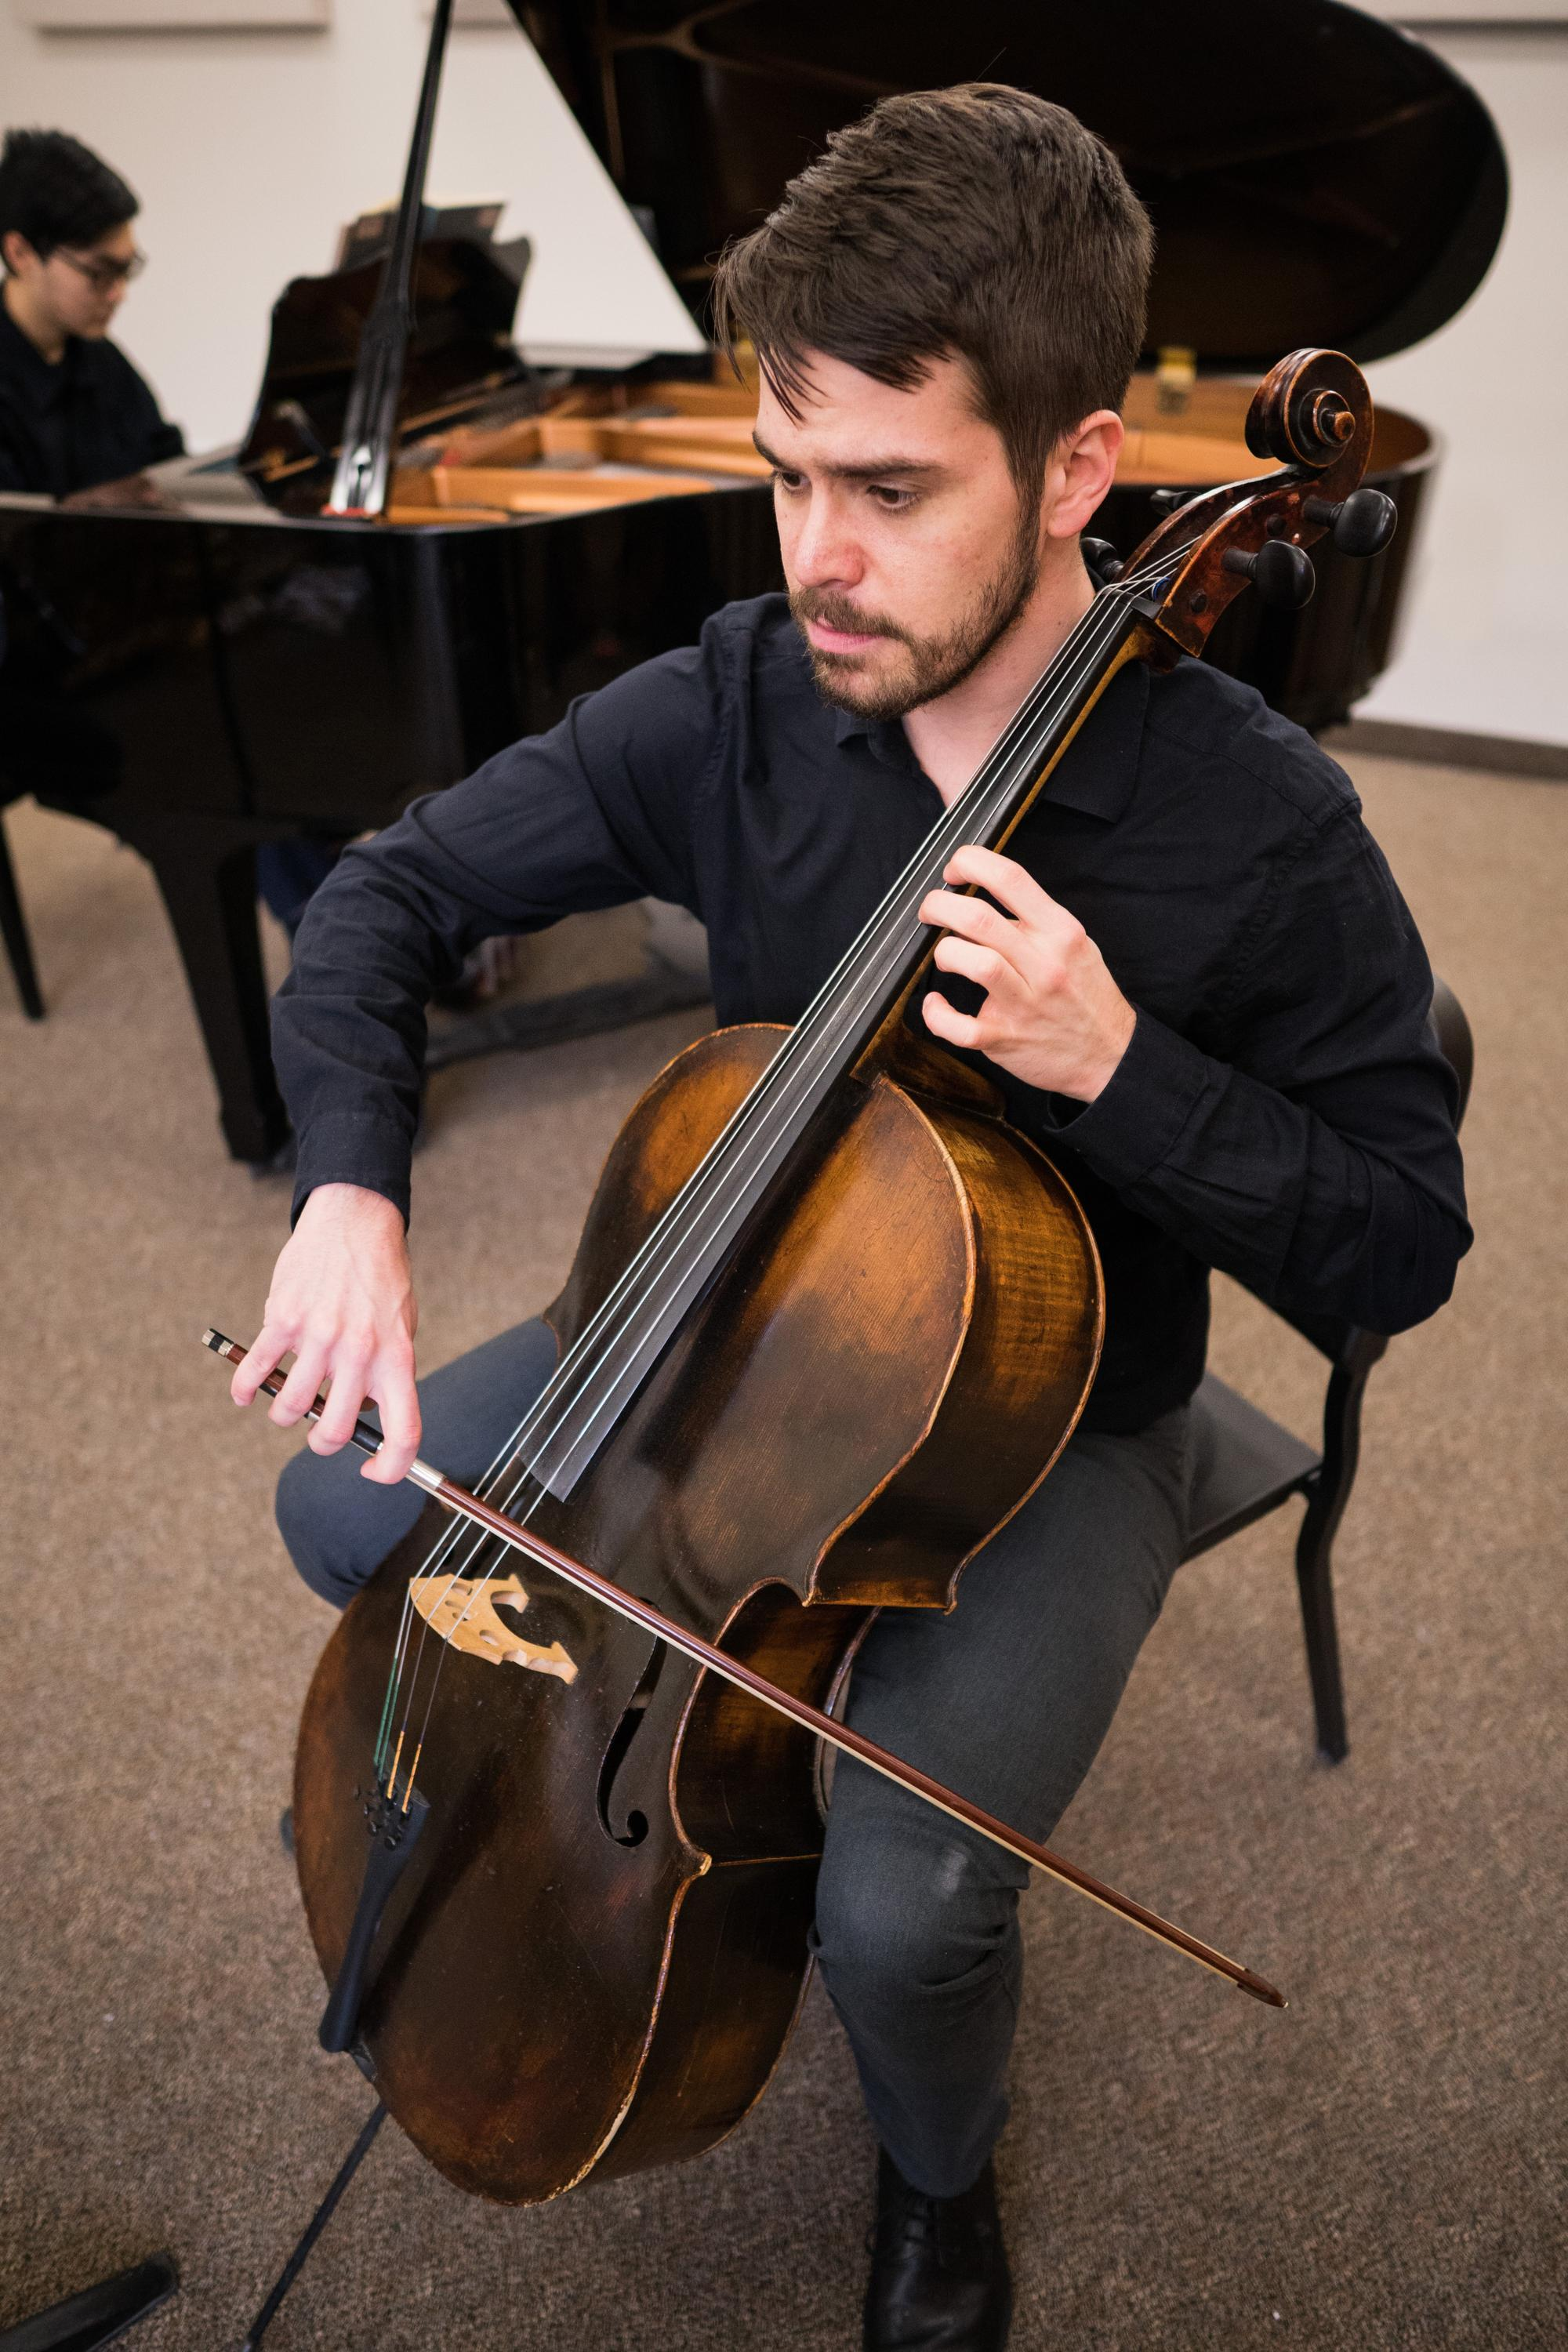 Sam Schirm, cello